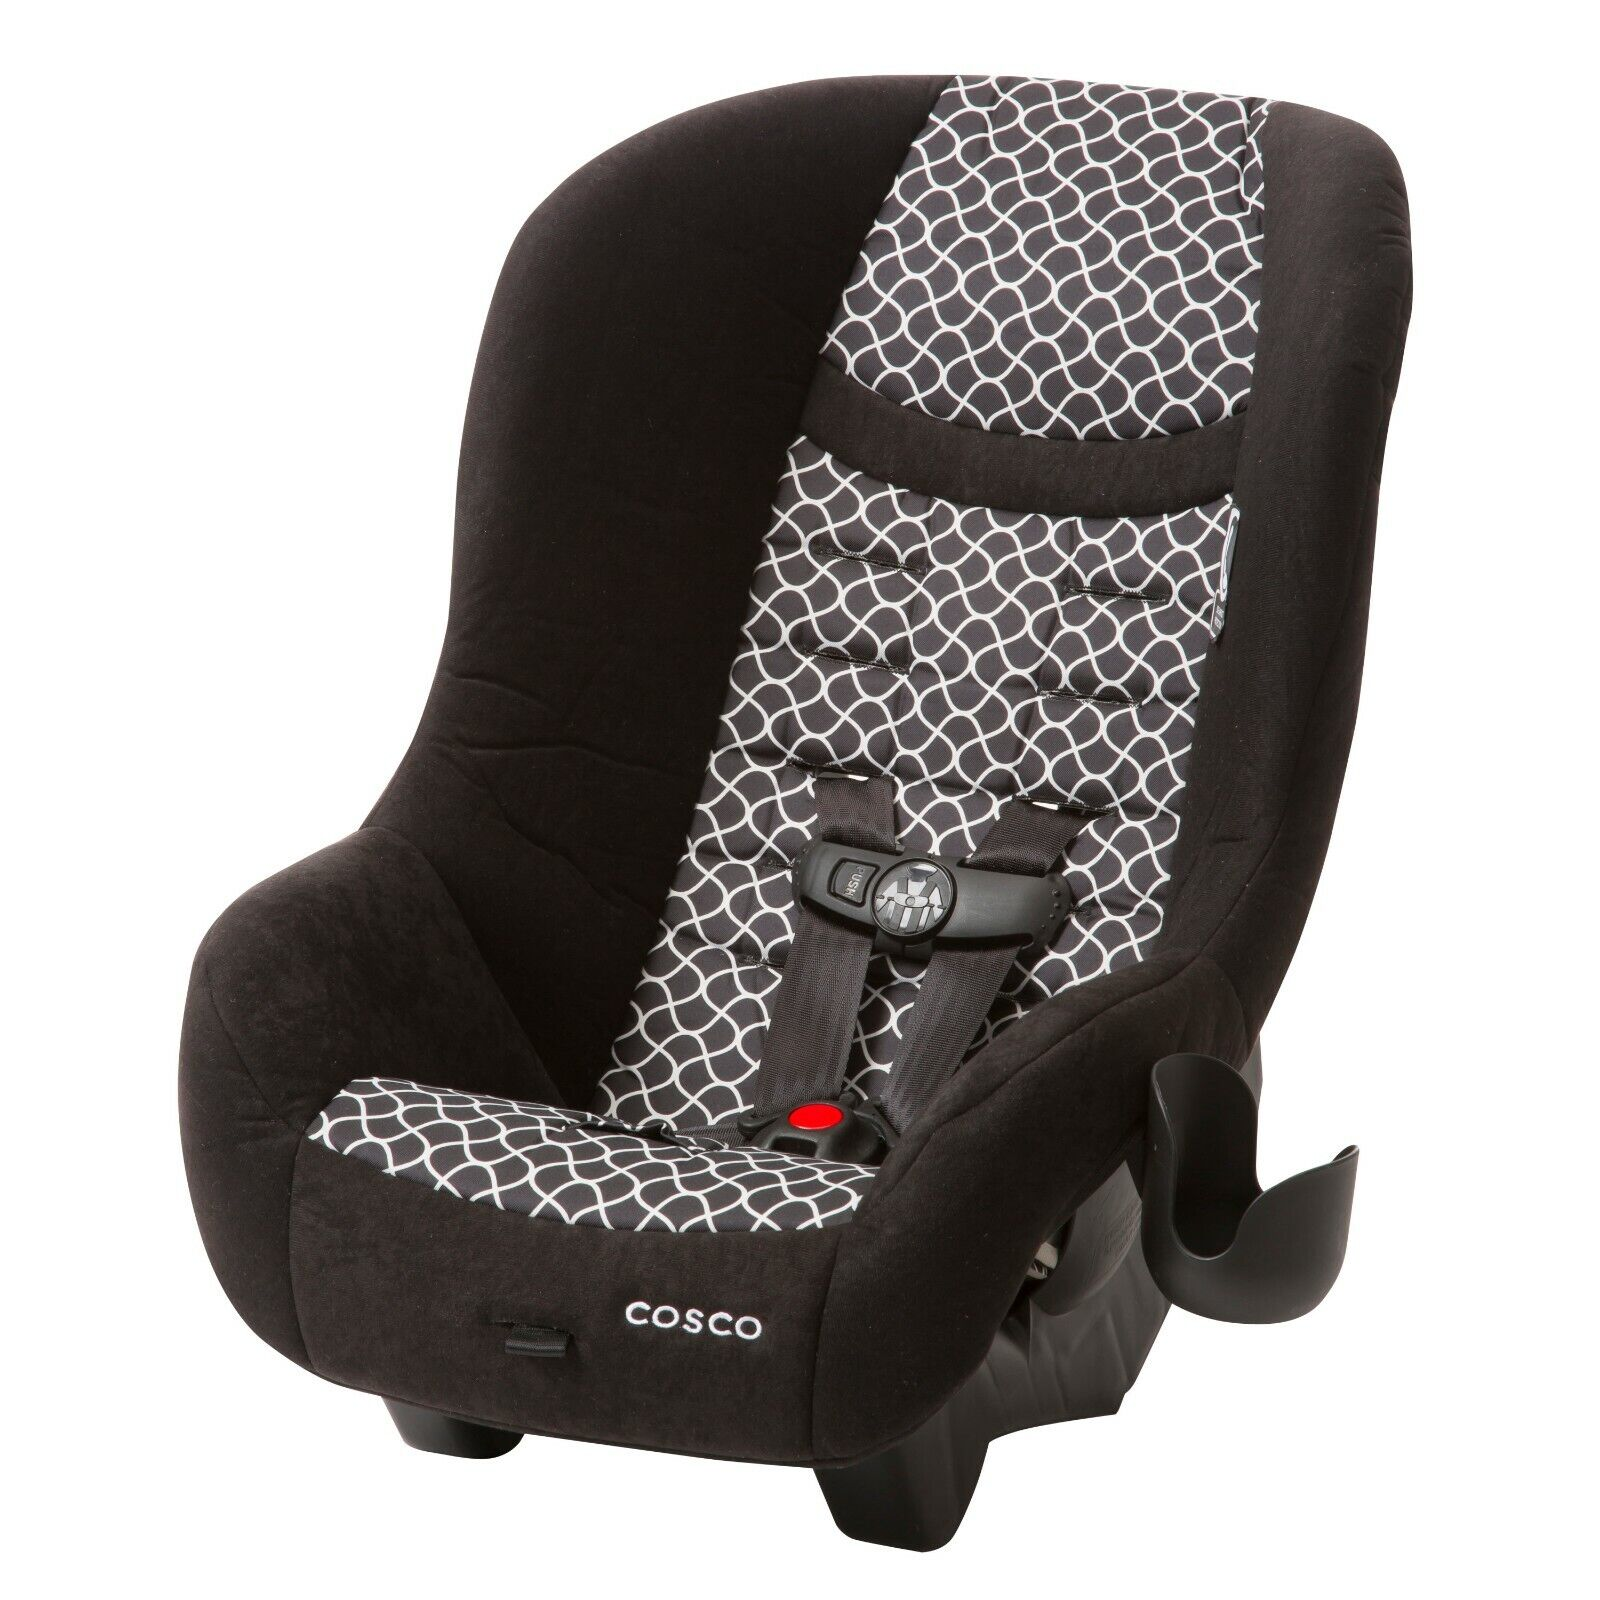 Convertible Car Seat Cosco Scenera NEXT Baby Child Infant Toddler Safety, Otto